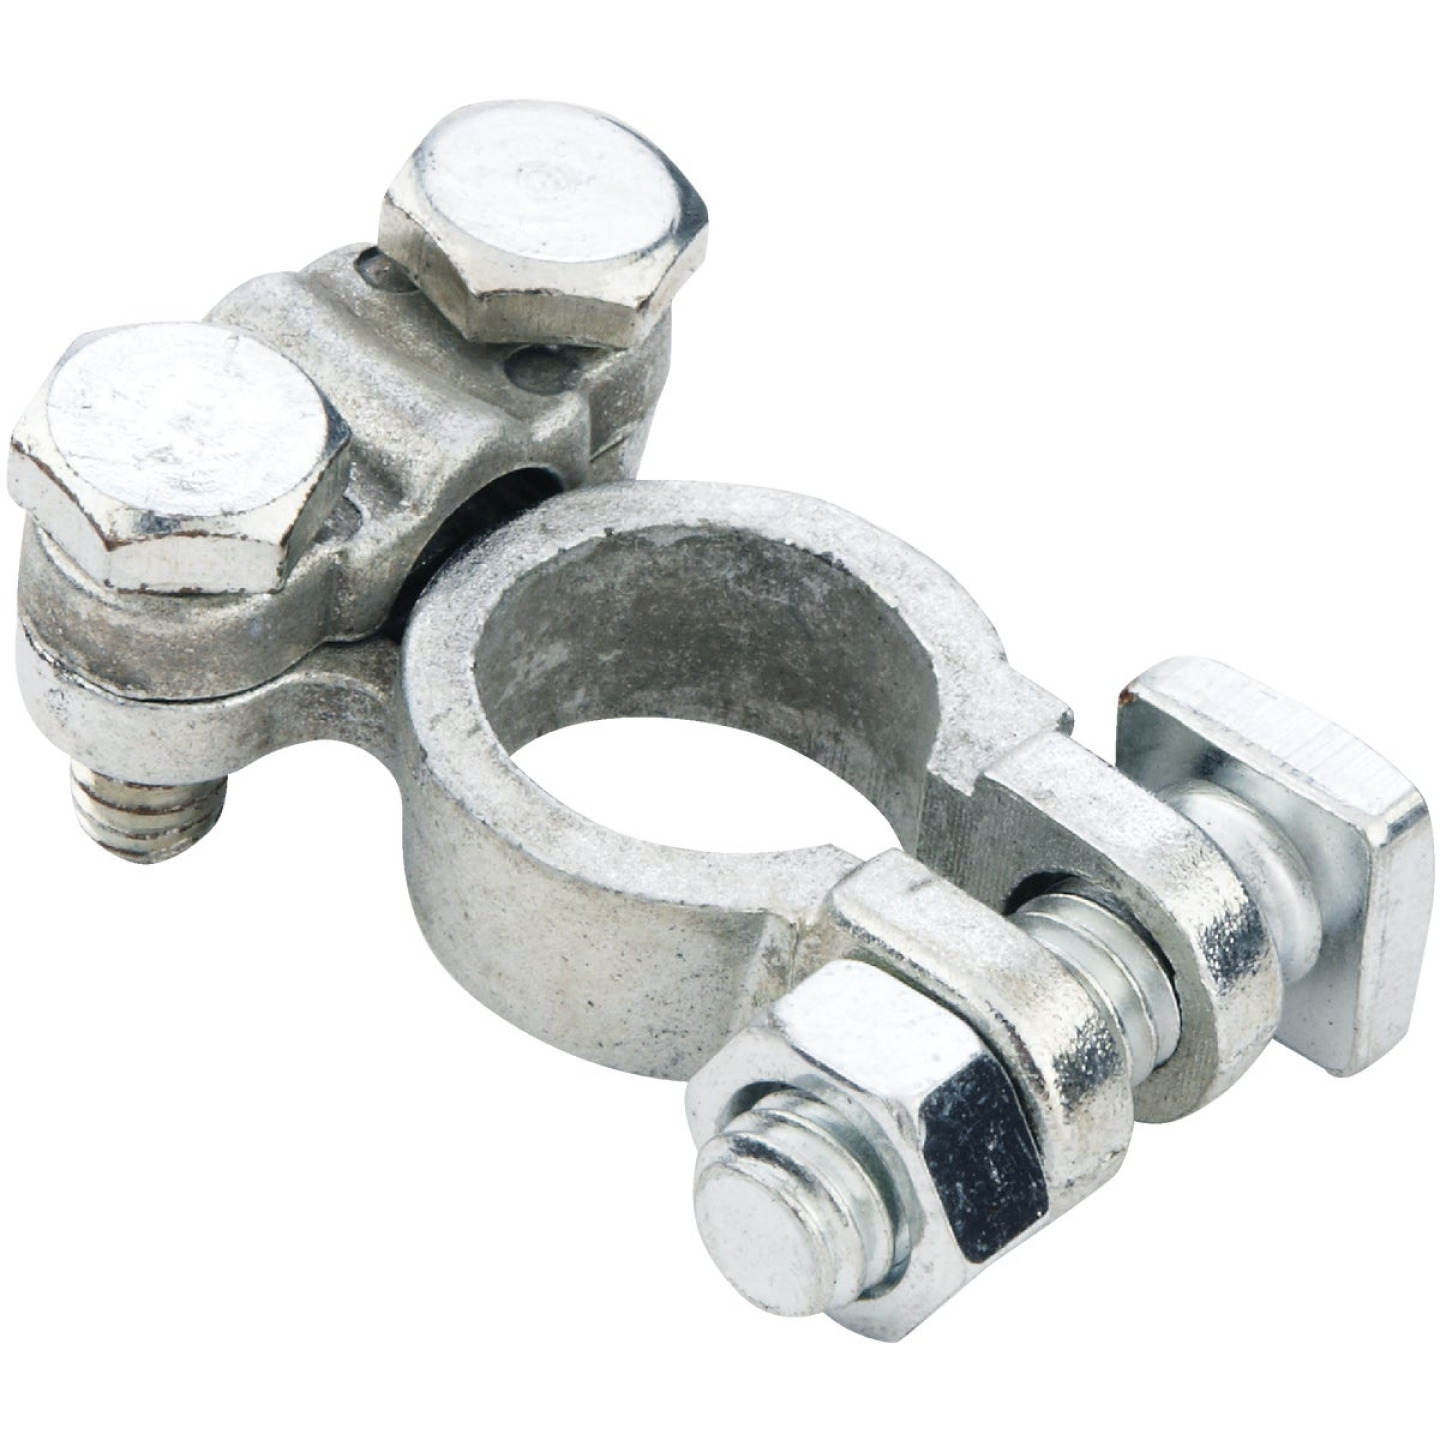 Custom Accessories Top Post Nickel-Plated Battery Terminal Image 1